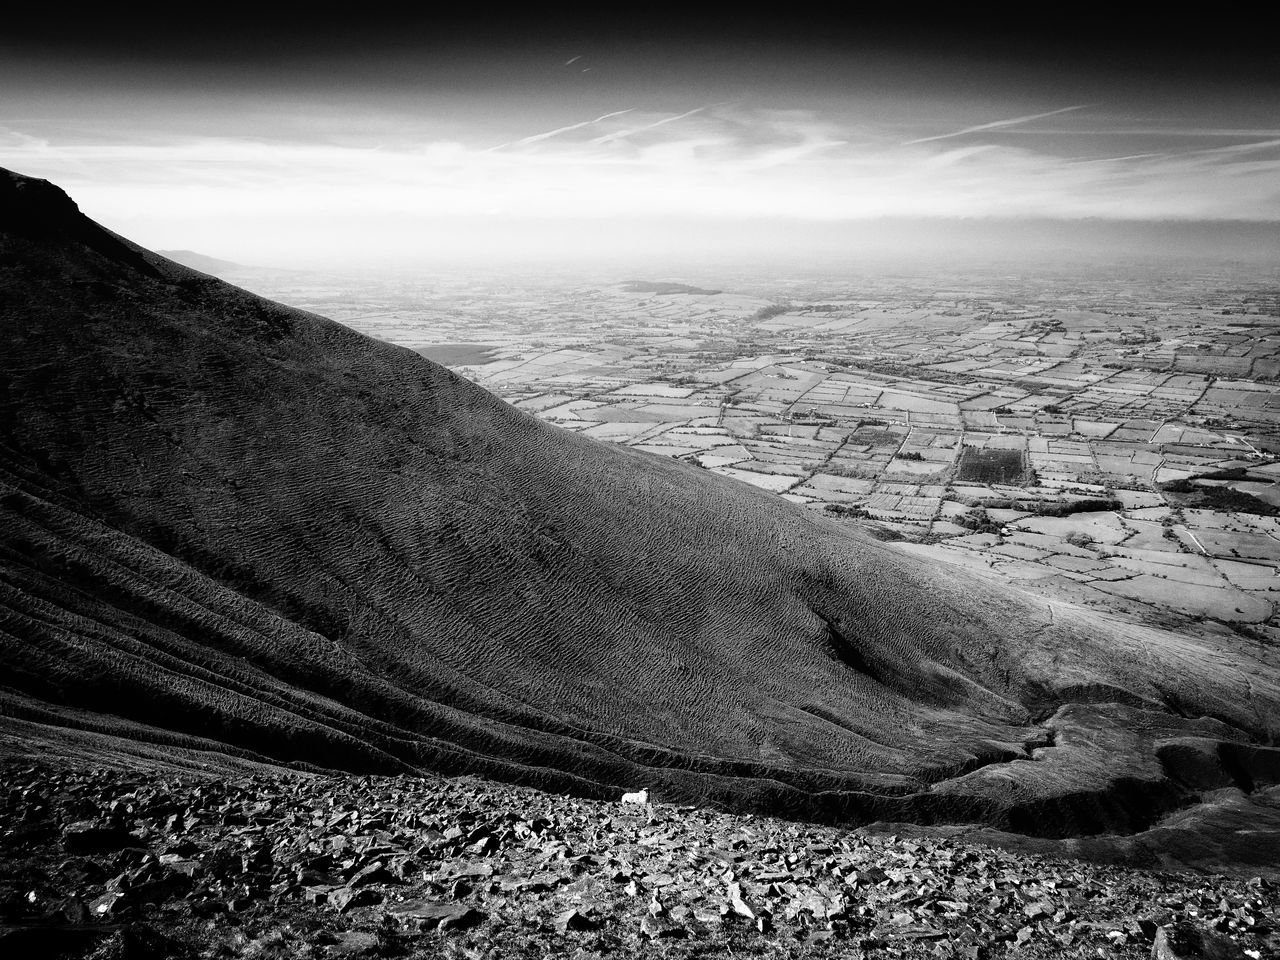 The Golden Vale ☘ Beauty In Nature Black & White Black And White County Limerick Day Galtee Mountains Golden Vale Ireland Landscape Landscapes Mountain Nature No People Outdoors Physical Geography Scenics Sheep Sky Tranquil Scene Tranquility The Great Outdoors - 2017 EyeEm Awards Lost In The Landscape Black And White Friday